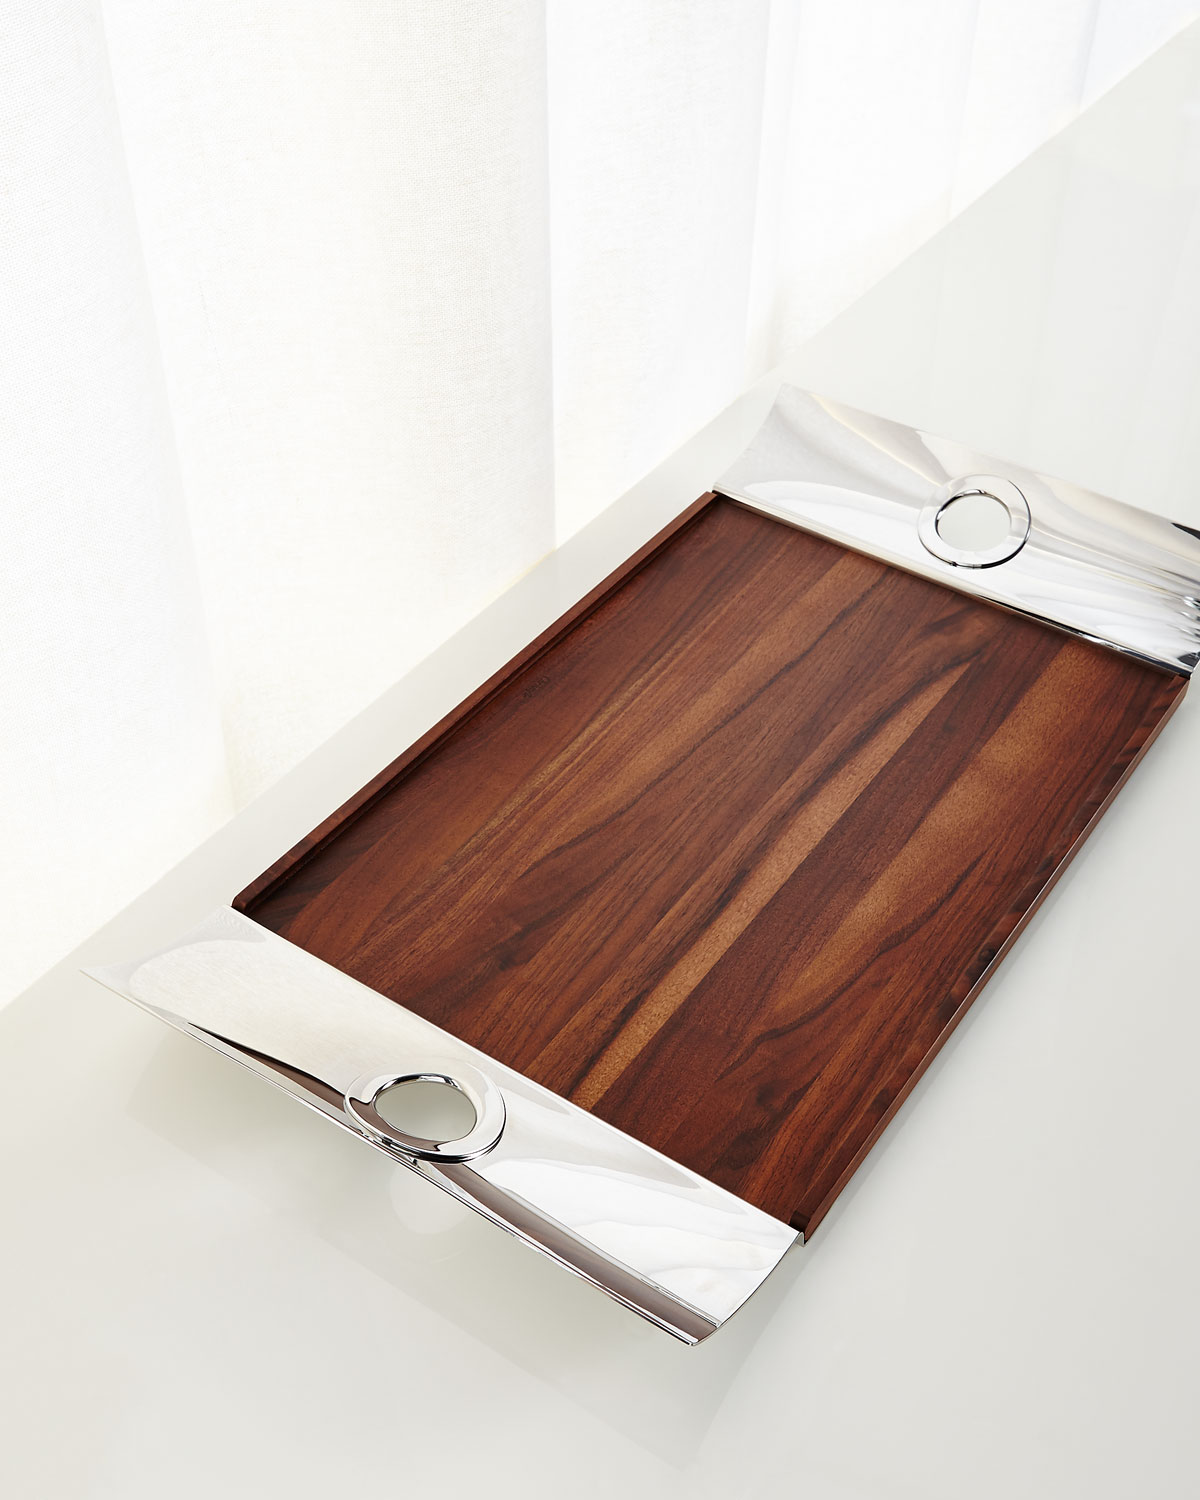 Christofle Clothing OH DE CHRISTOFLE RECTANGLE TRAY WITH WOOD